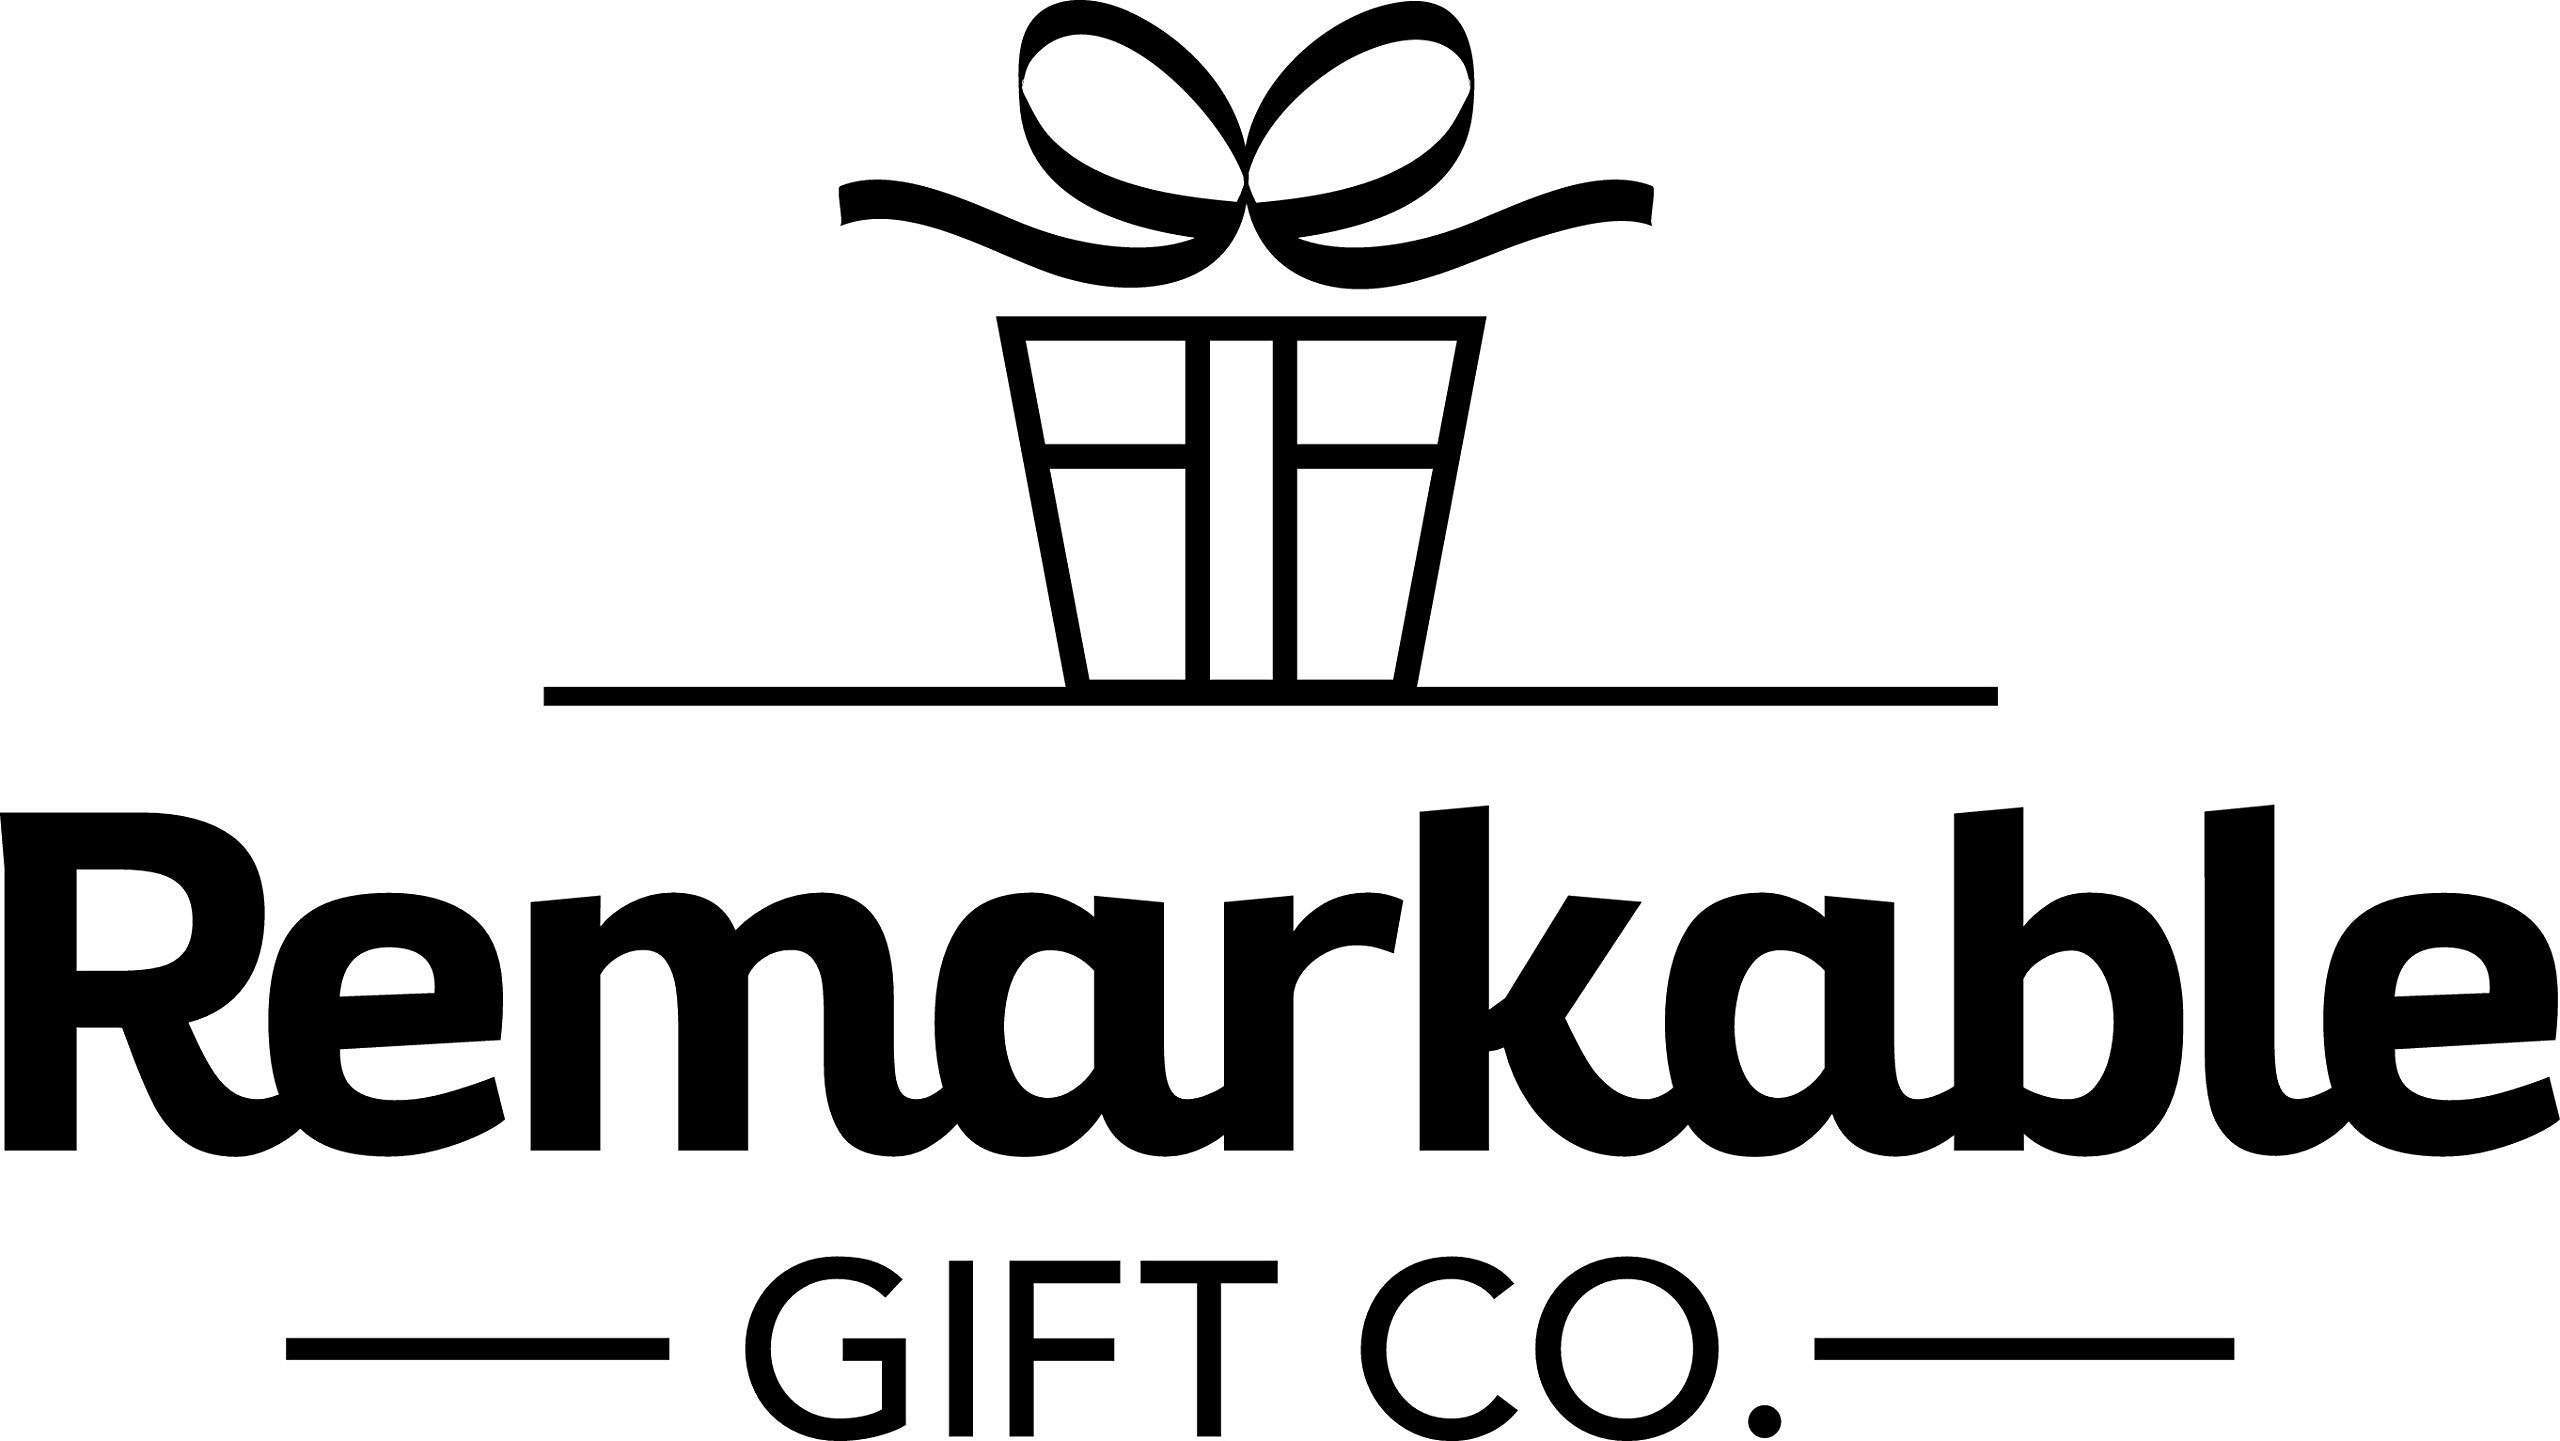 Remarkable Gift Co. Grand Gourmet Gift Basket by Remarkable Gift Co. (Image #2)